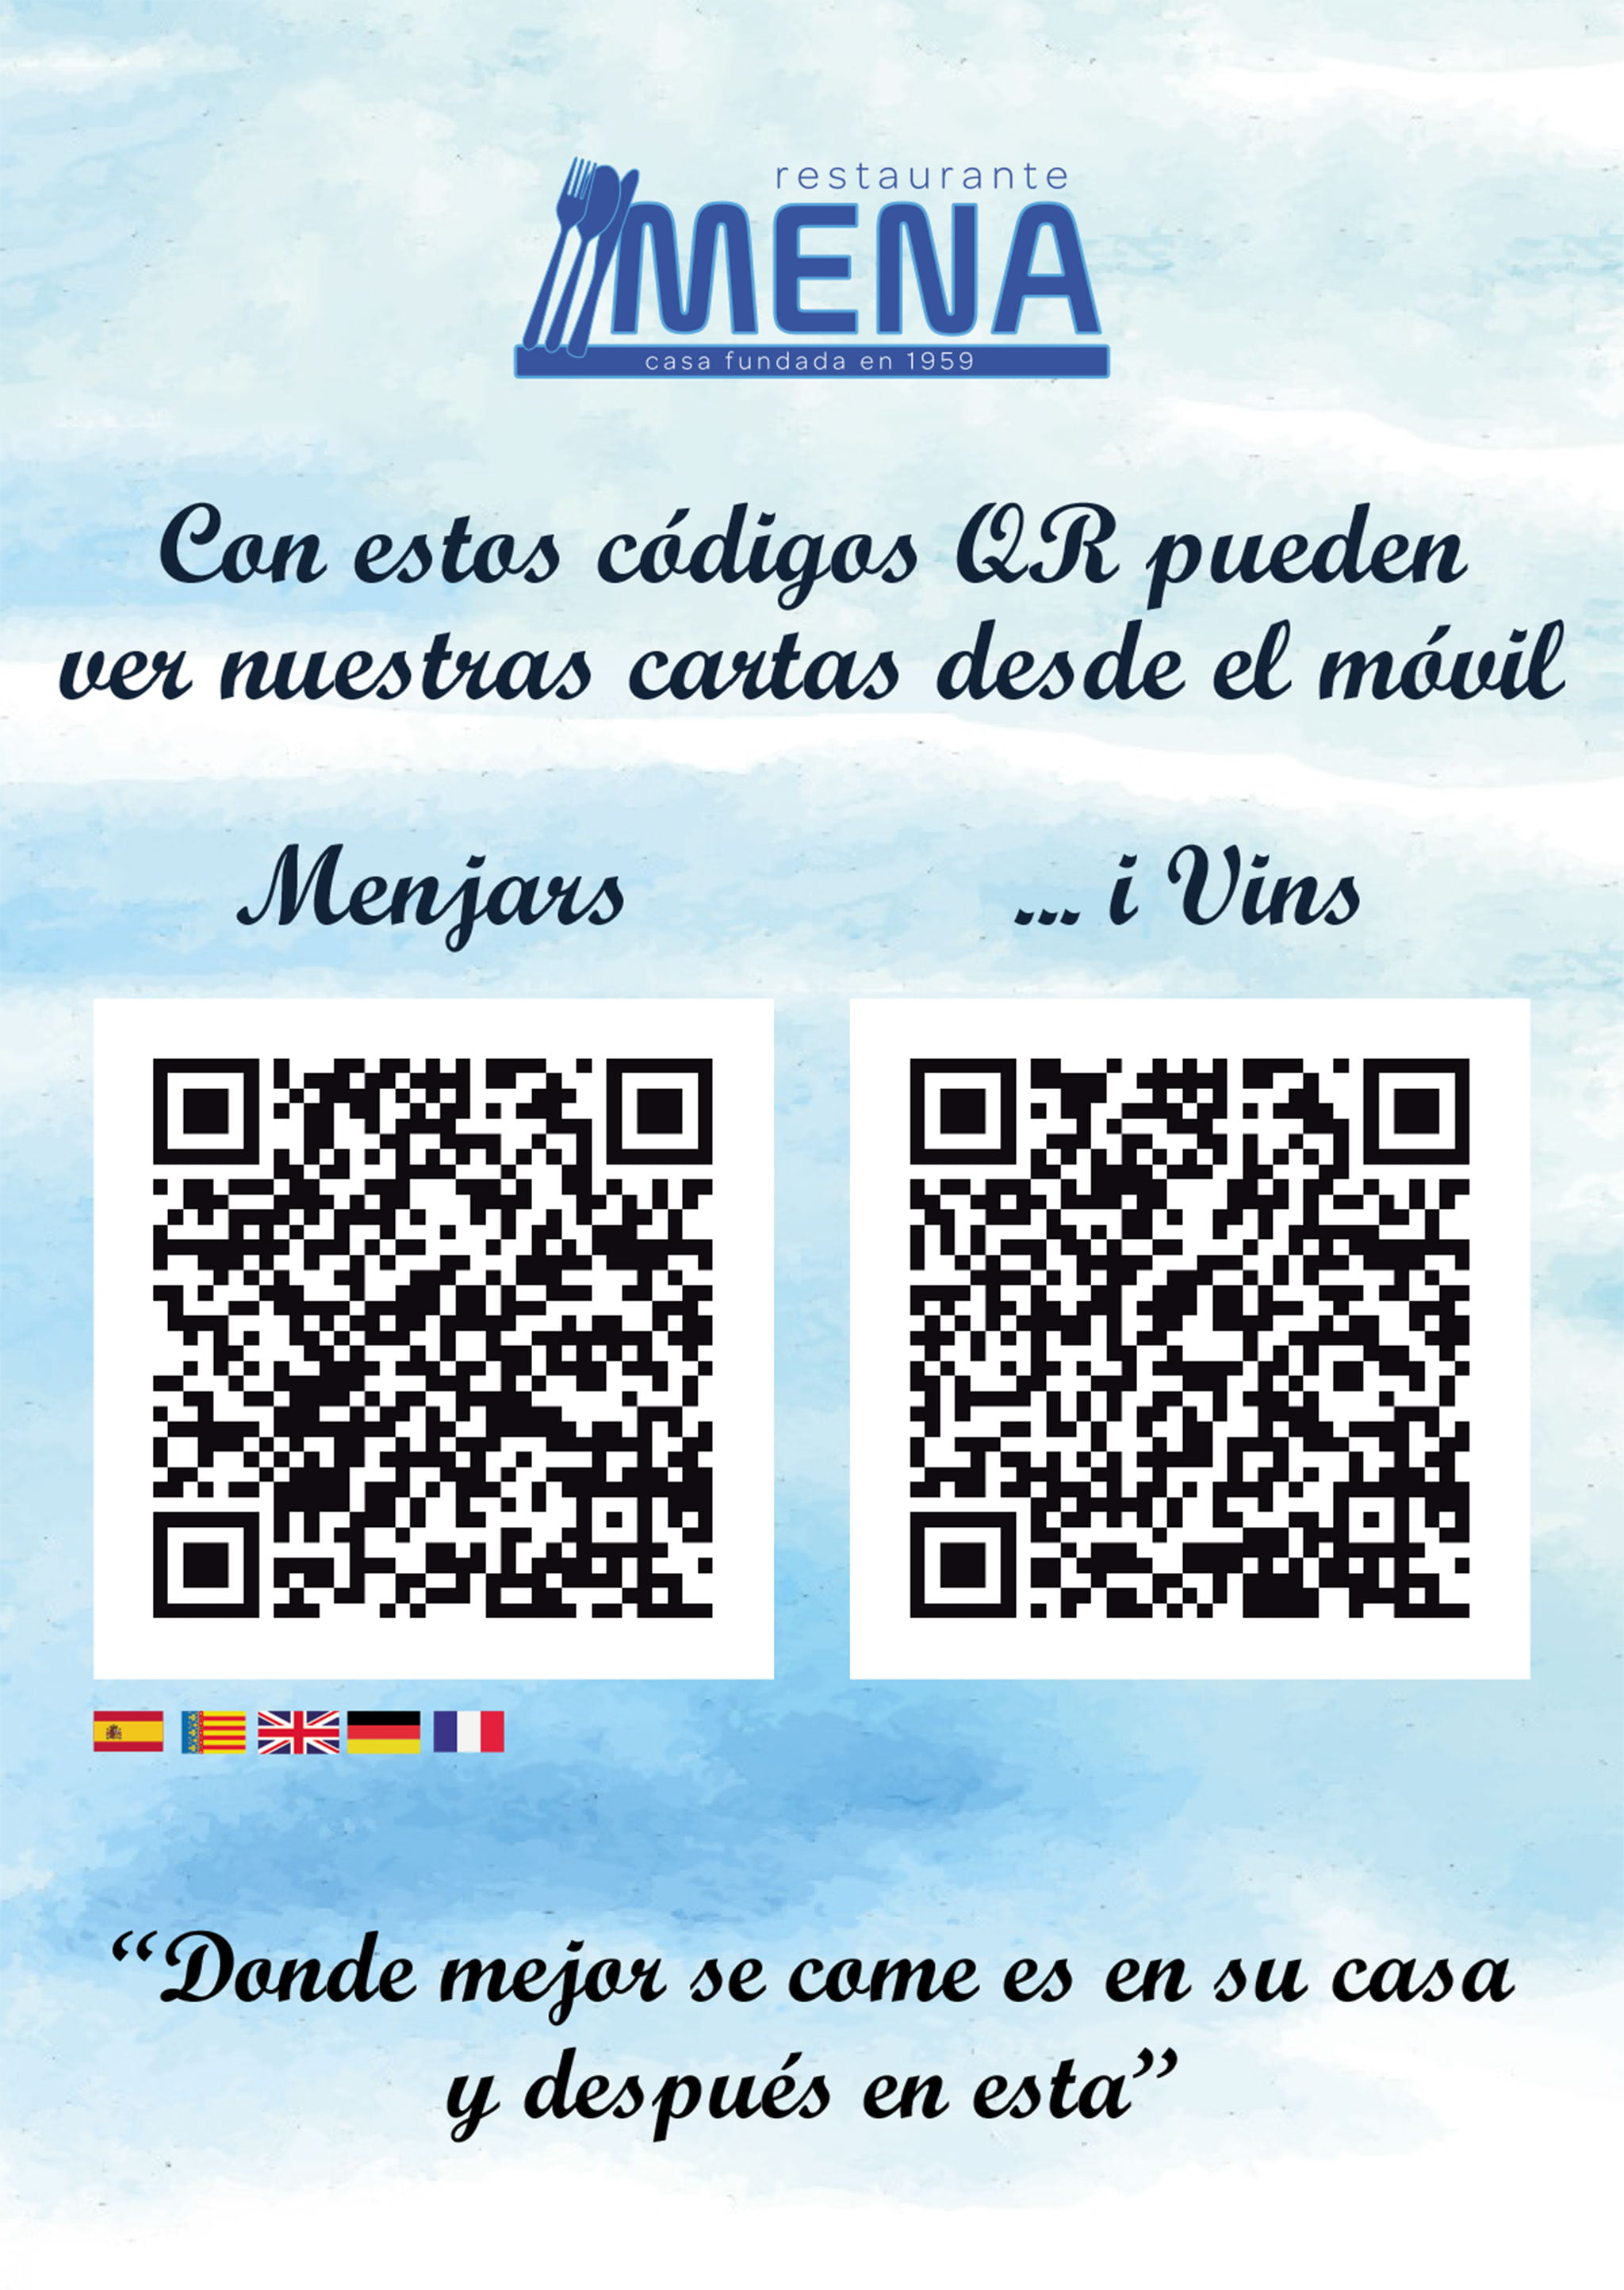 Menu with QR code of Restaurante Mena - Avantcem